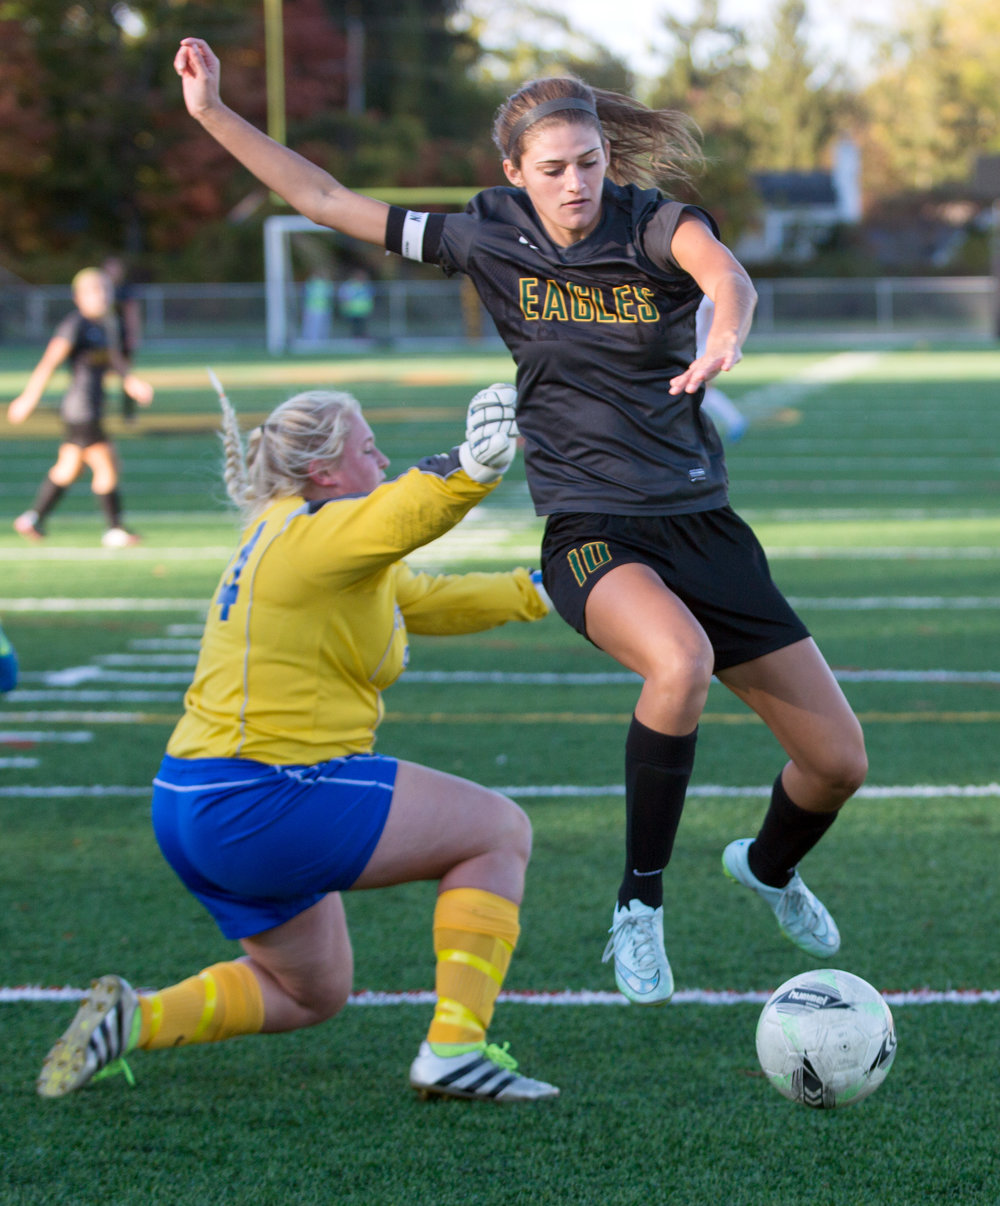 Karleigh Clere of Clay High School jumps passed St. Ursula's goal keeper Caelan Warneke during the Division I girls soccer district tournament at Northview High School Monday, Oct. 24, 2016.